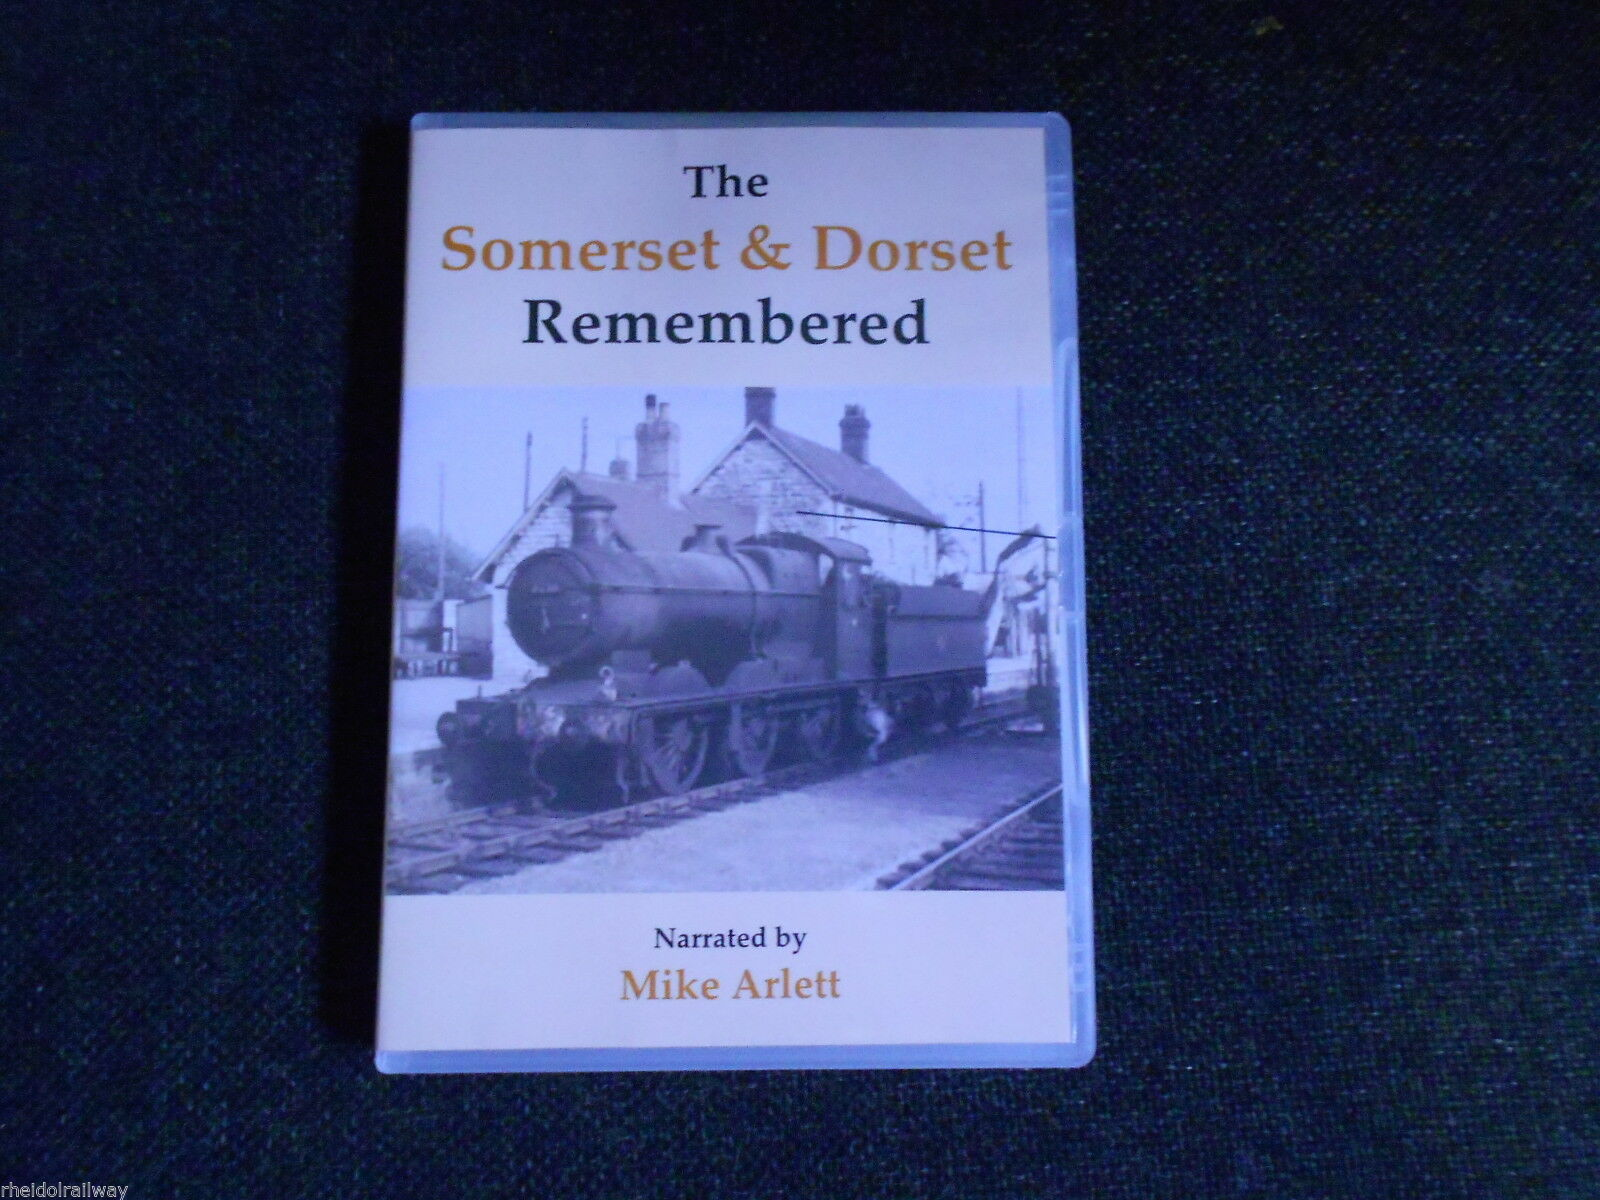 The Somerset & Dorset Remembered DVD